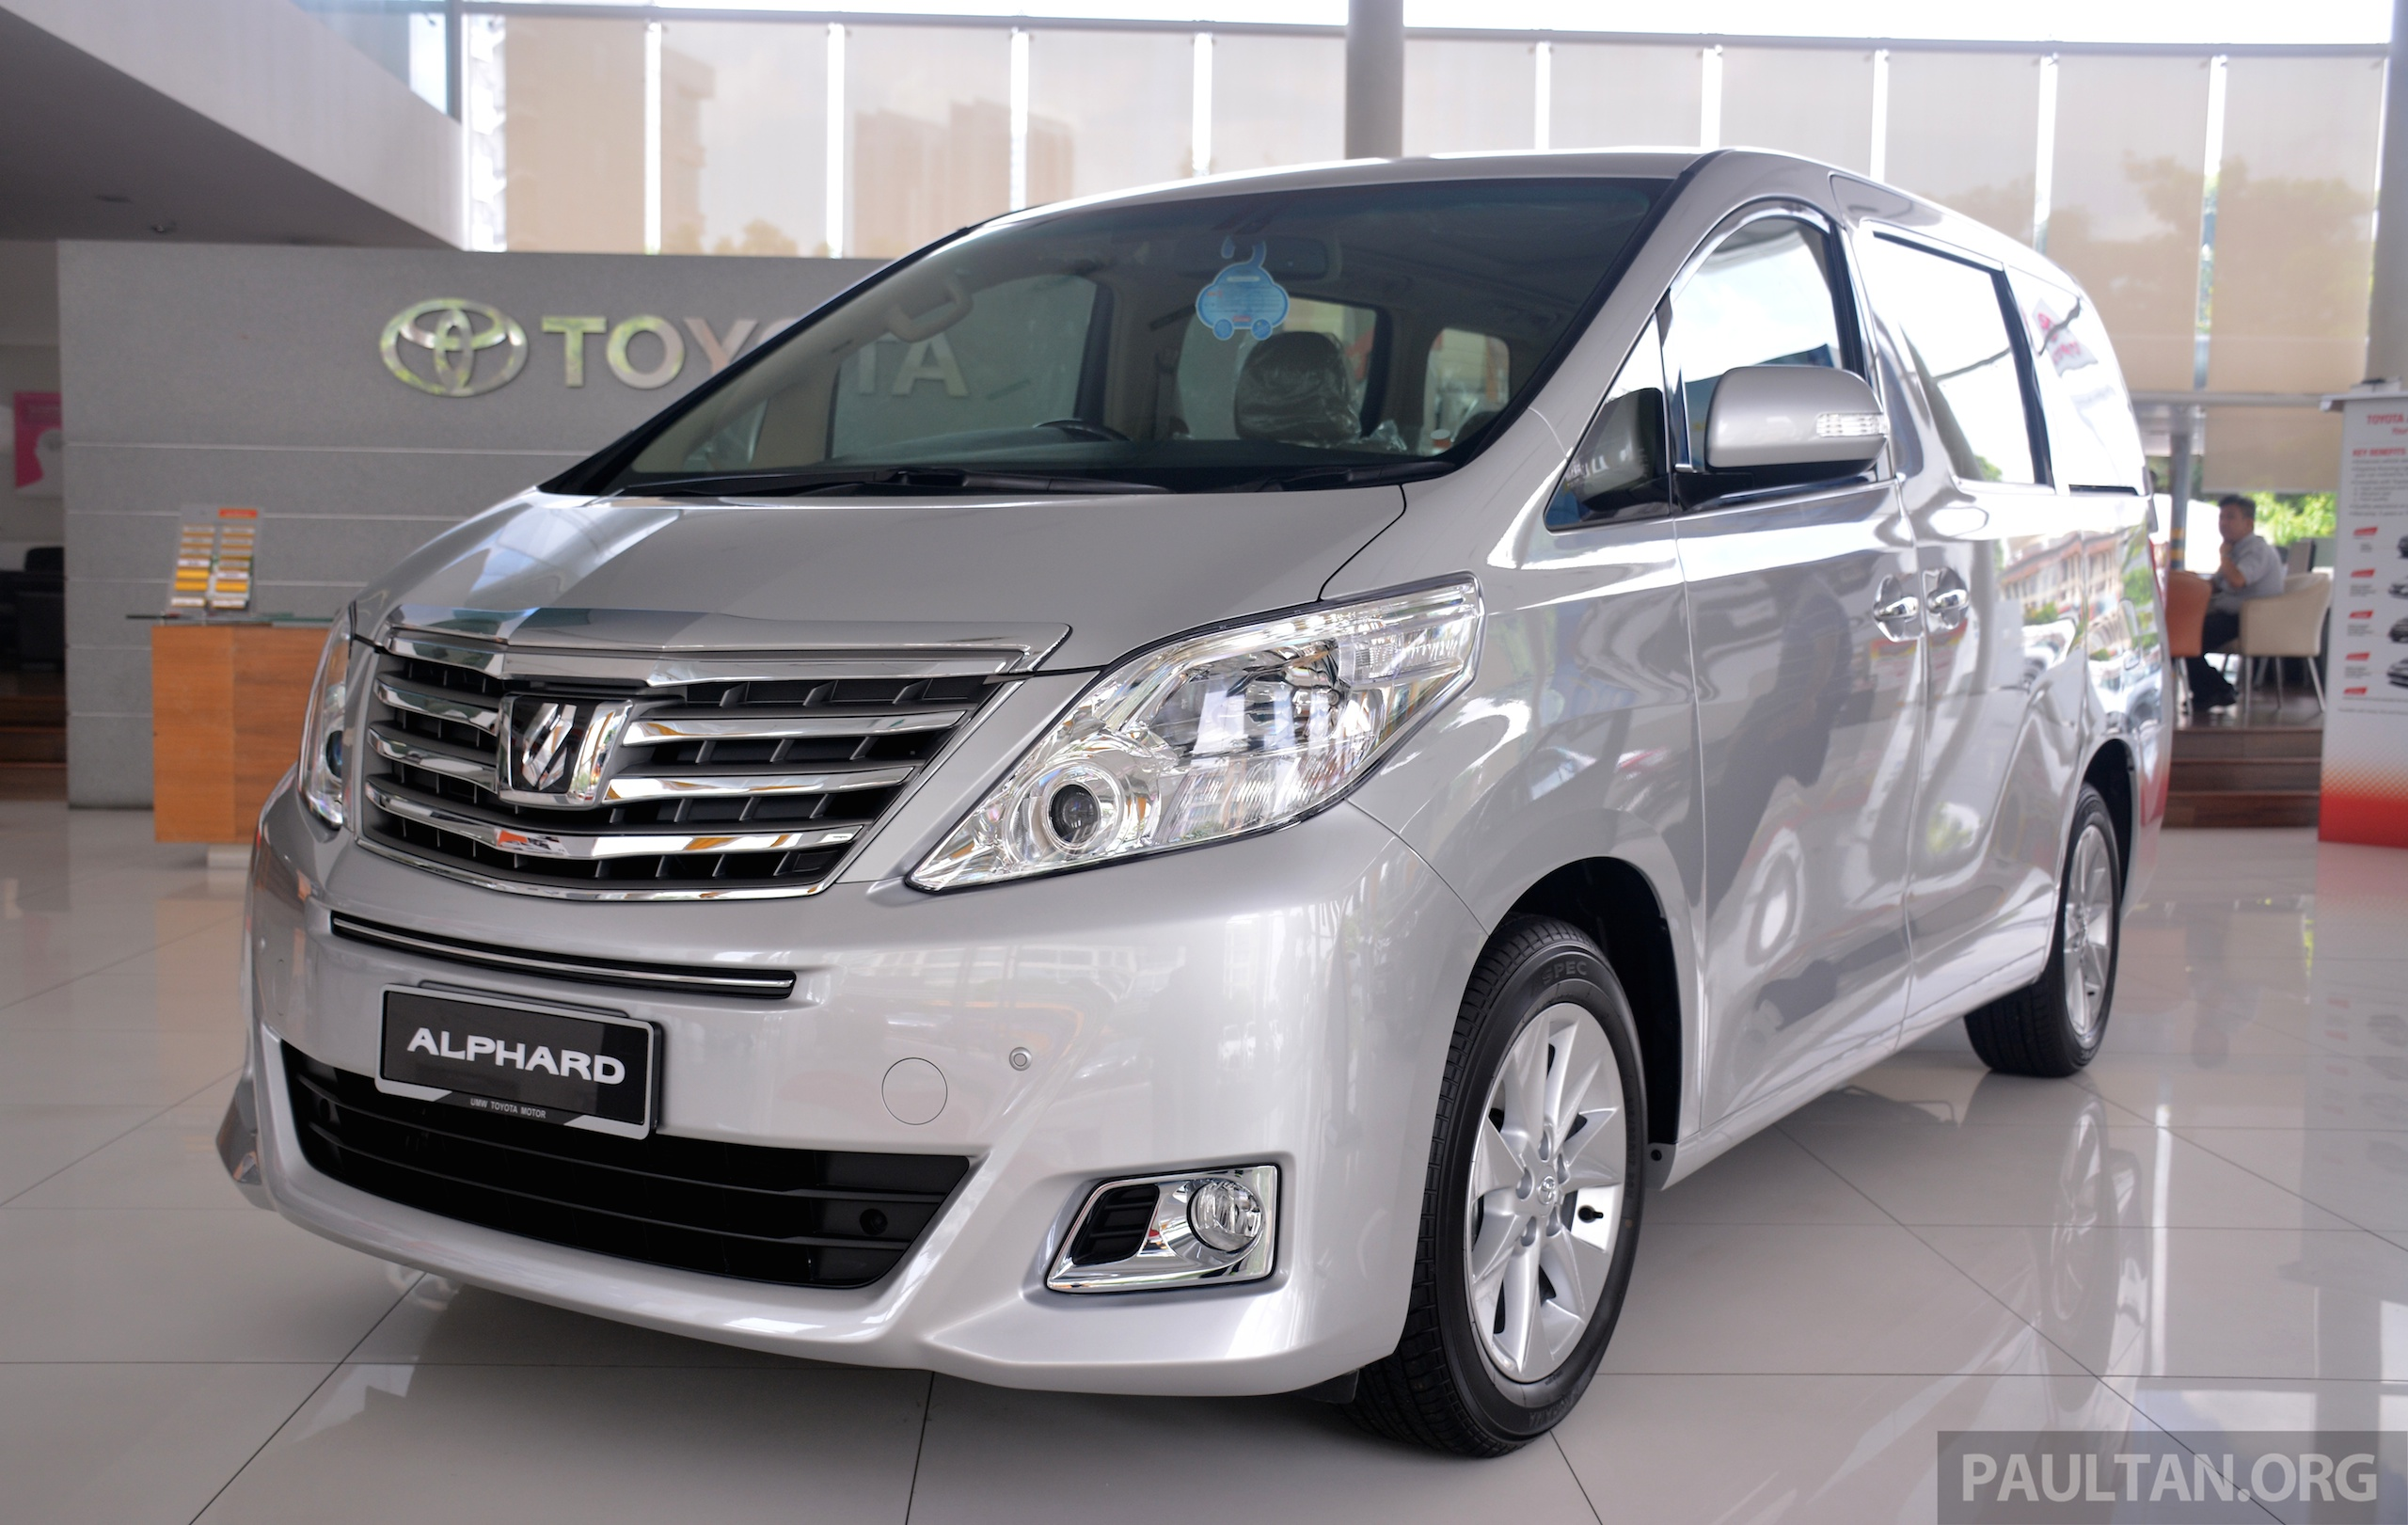 Toyota alphard new car price in malaysia 12